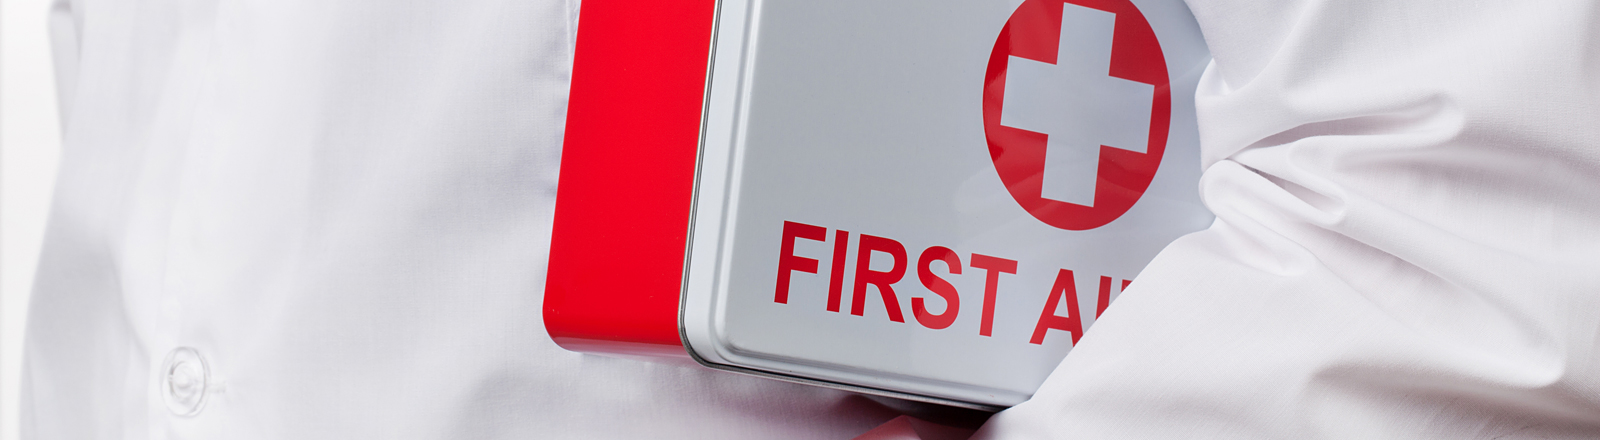 First Aid Koffer